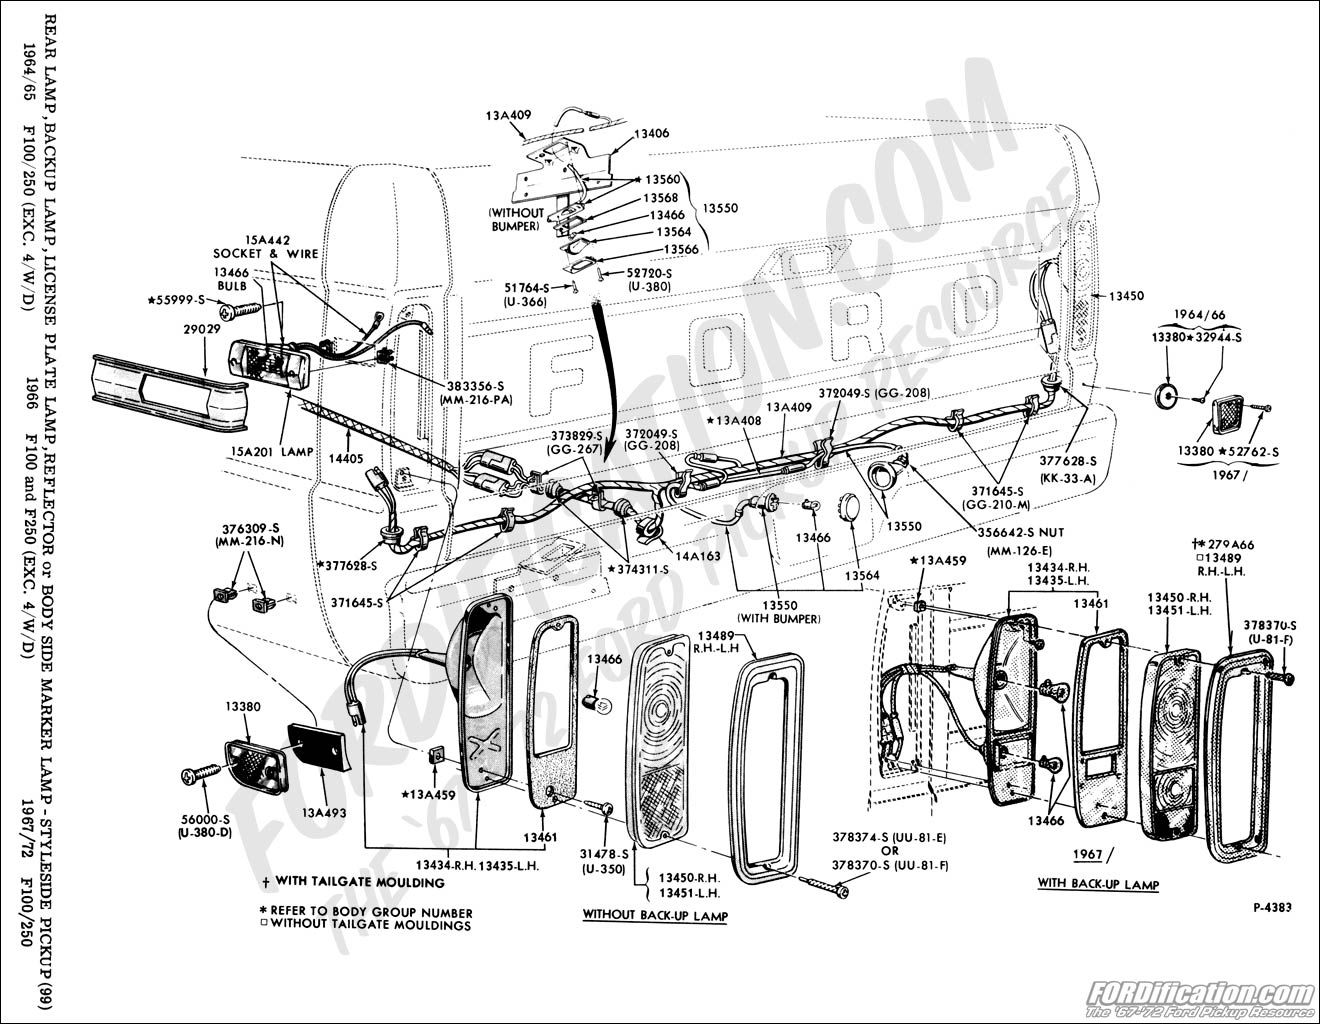 f100 wiring diagram gm alternator internal regulator ford truck technical drawings and schematics section i